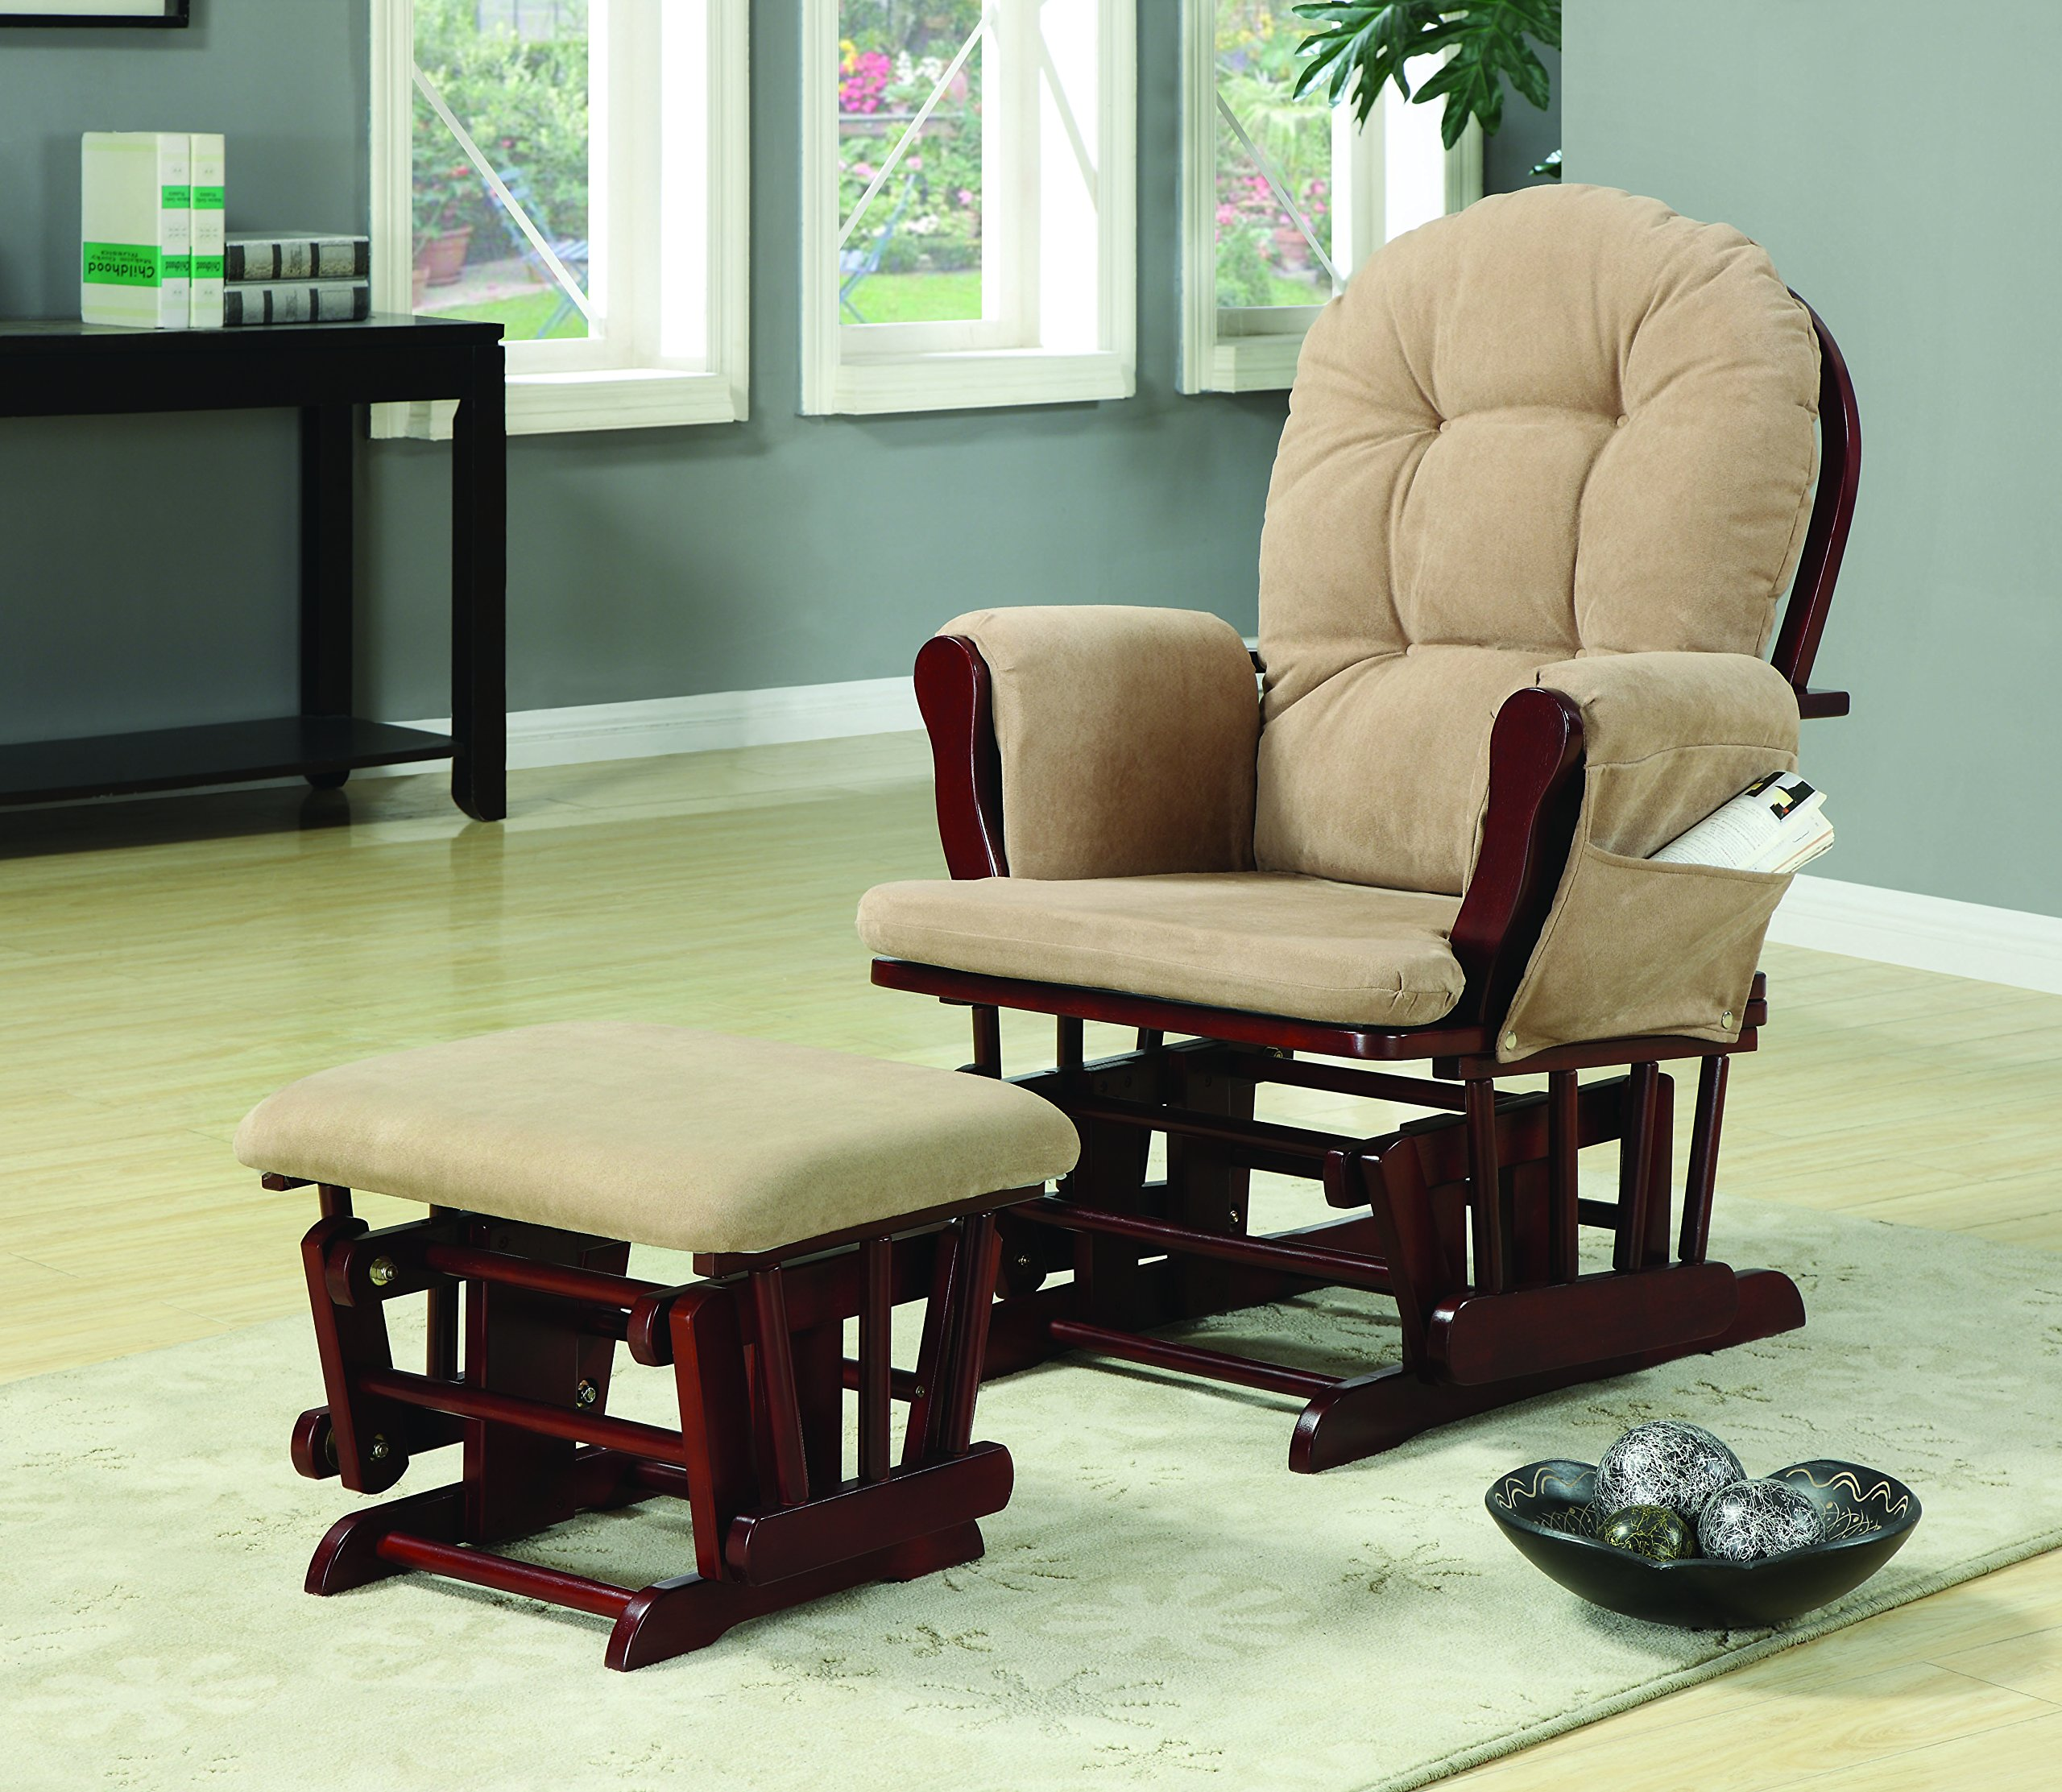 Upholstery Glider Rocker with Matching Ottoman Beige and Cherry by Coaster Home Furnishings